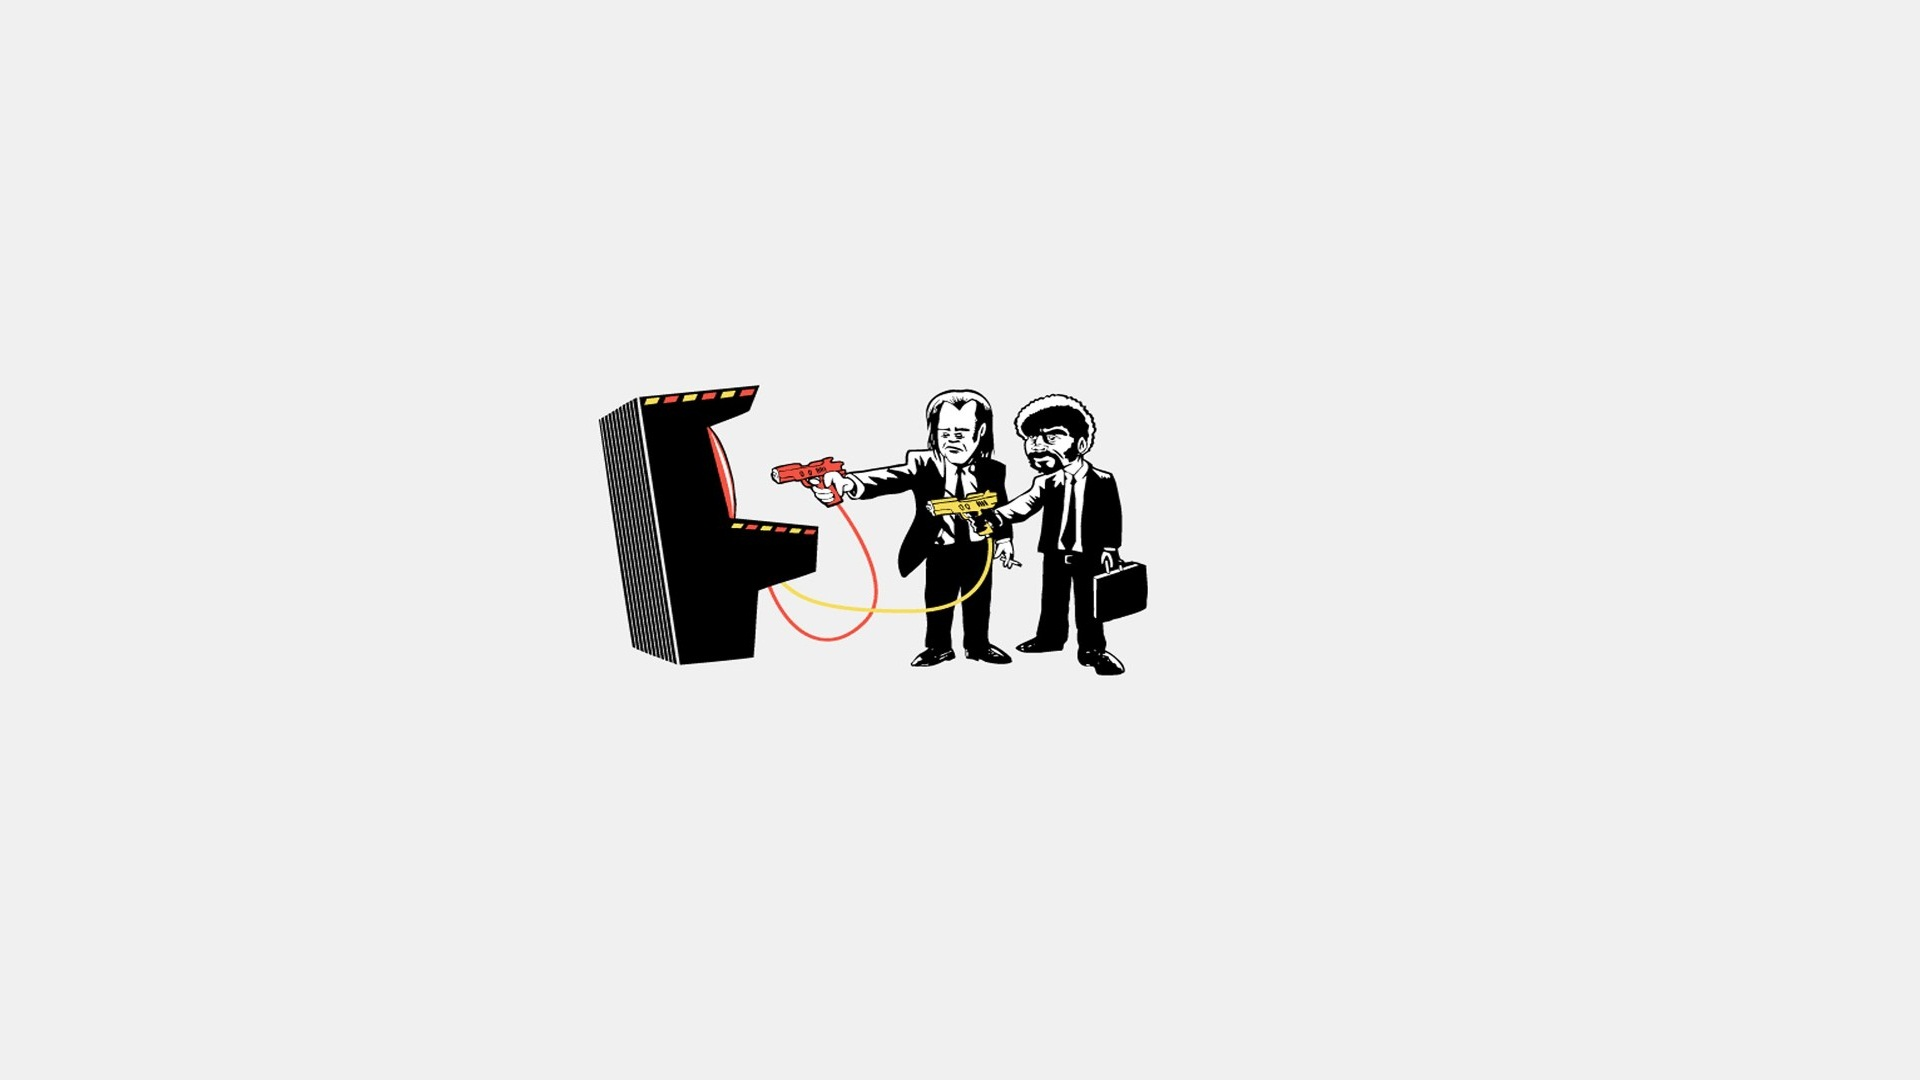 General 1920x1080 Pulp Fiction (parody) arcade  Pulp Fiction white background simple background